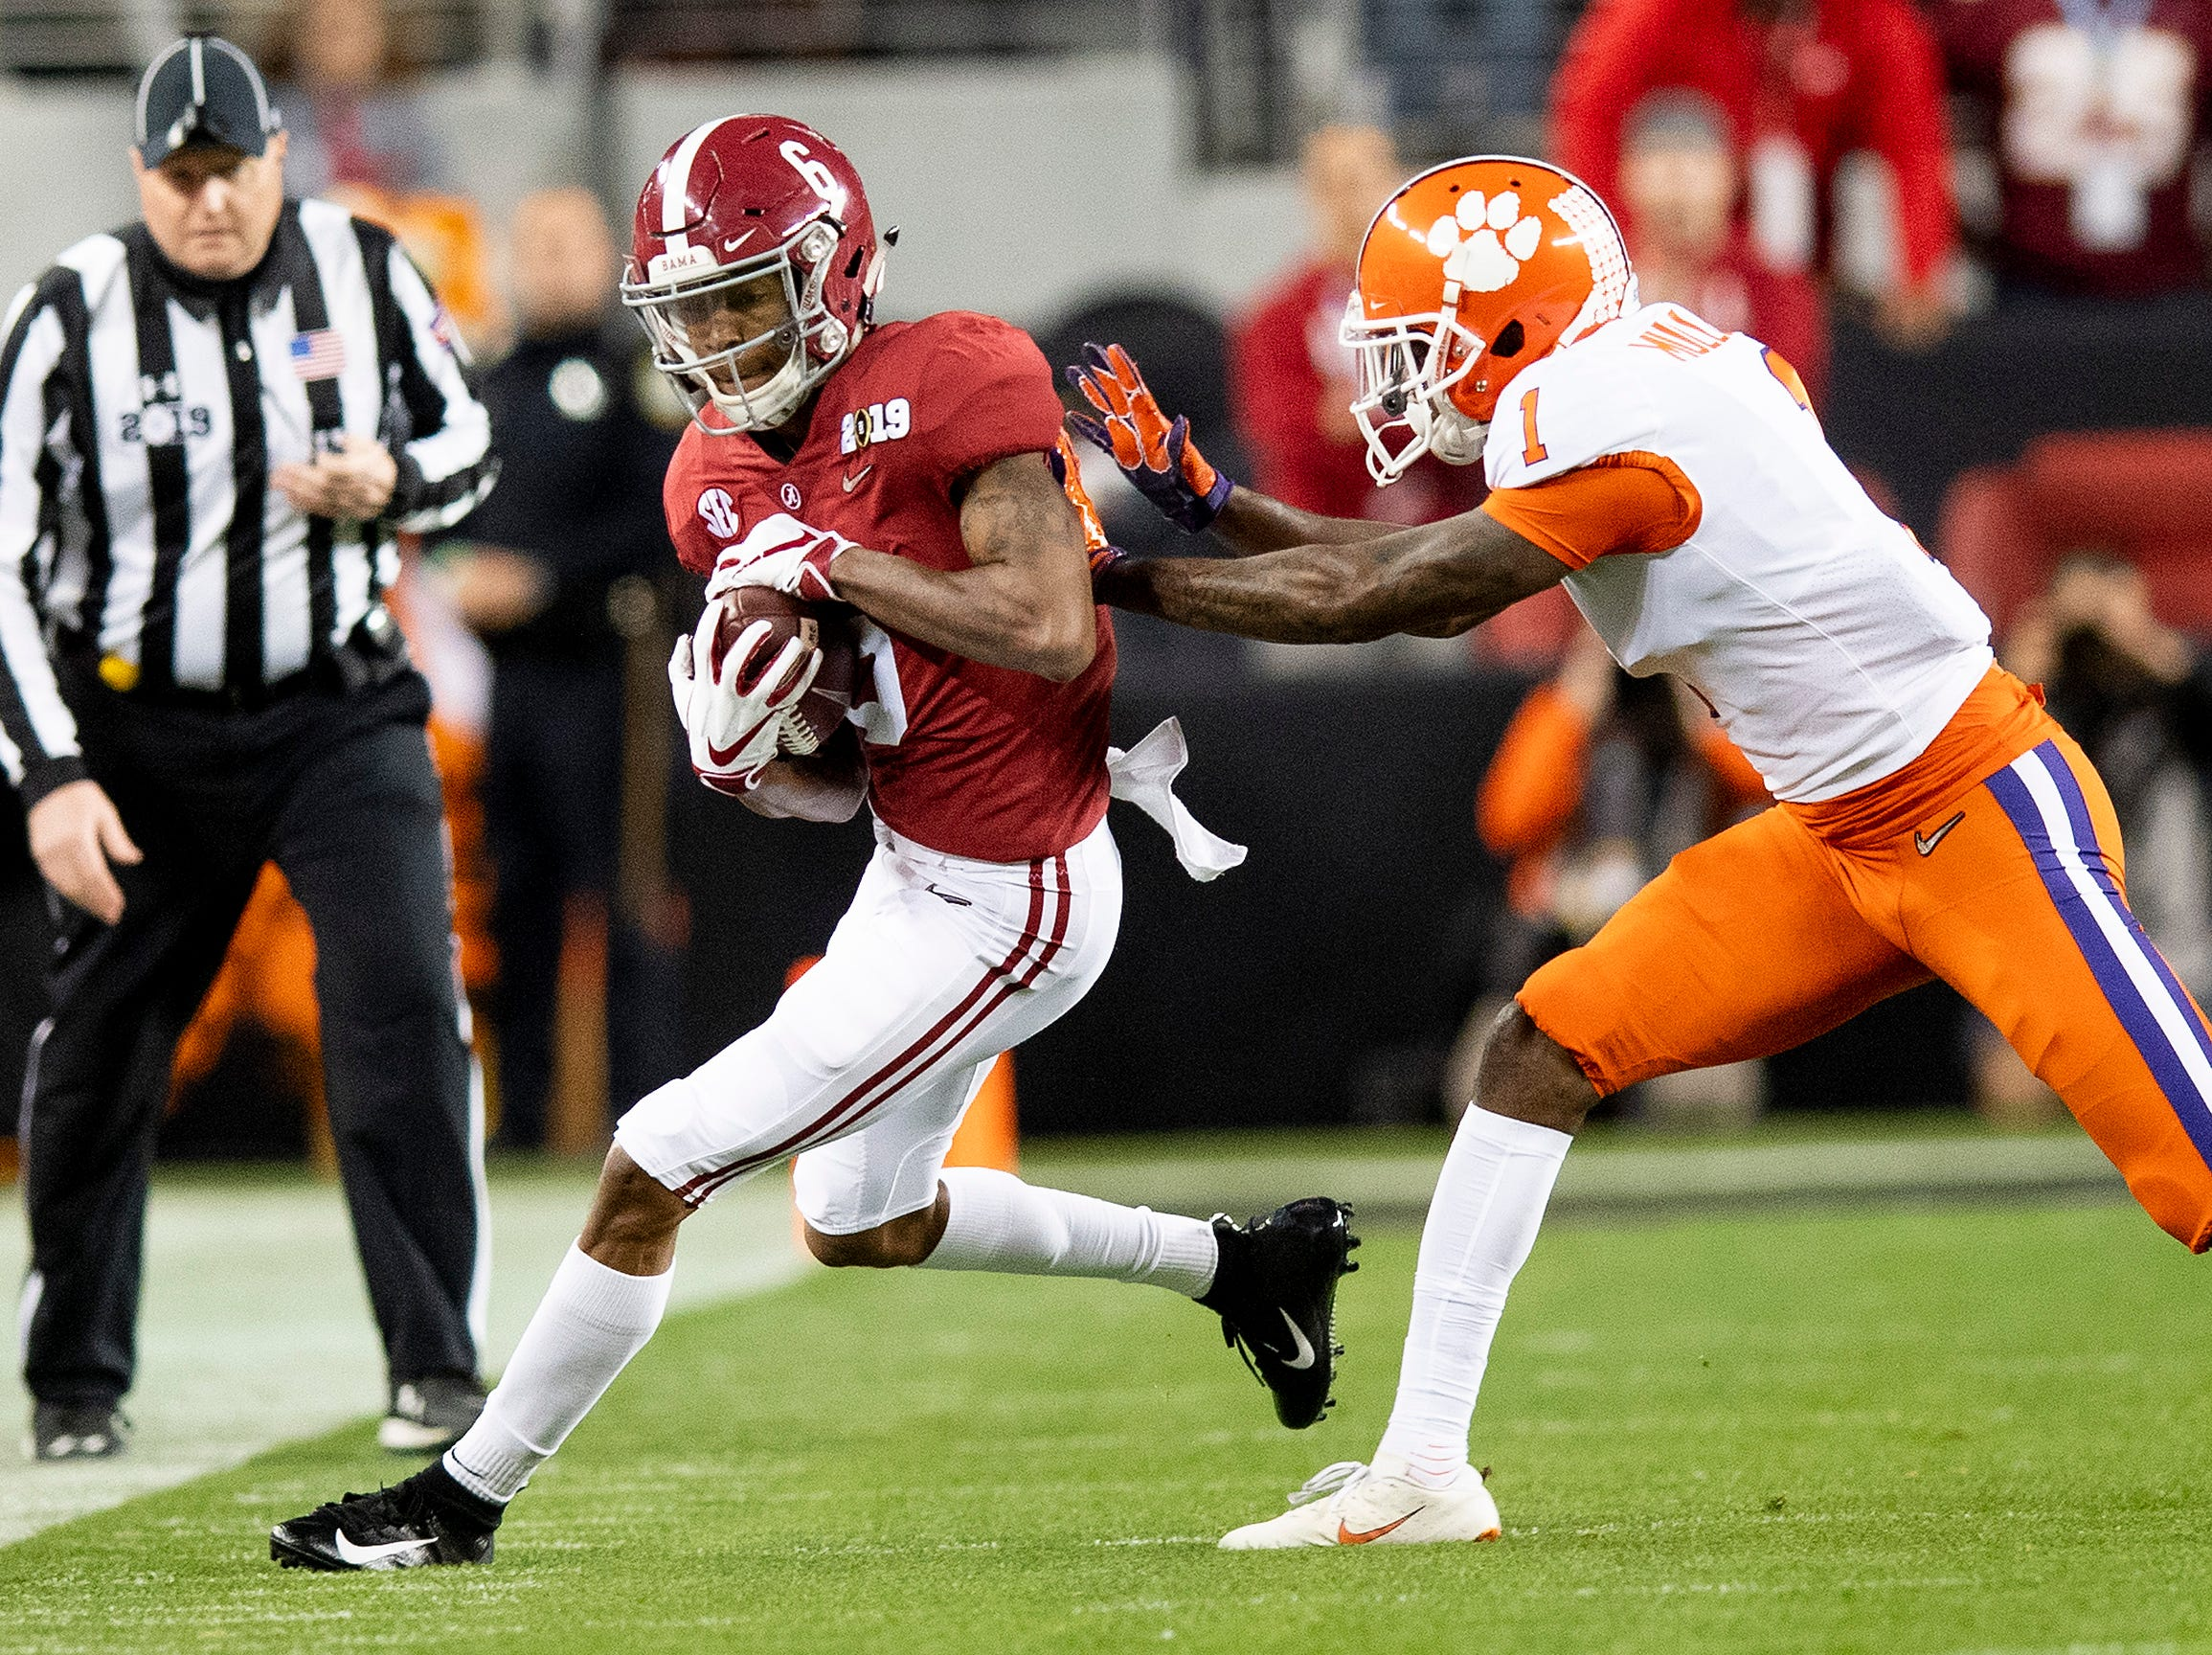 Alabama wide receiver DeVonta Smith (6) is forced out of bounds by Clemson cornerback Trayvon Mullen (1) In first half action of the College Football Playoff National Championship game at Levi's Stadium in Santa Clara, Ca., on Monday January 7, 2019.